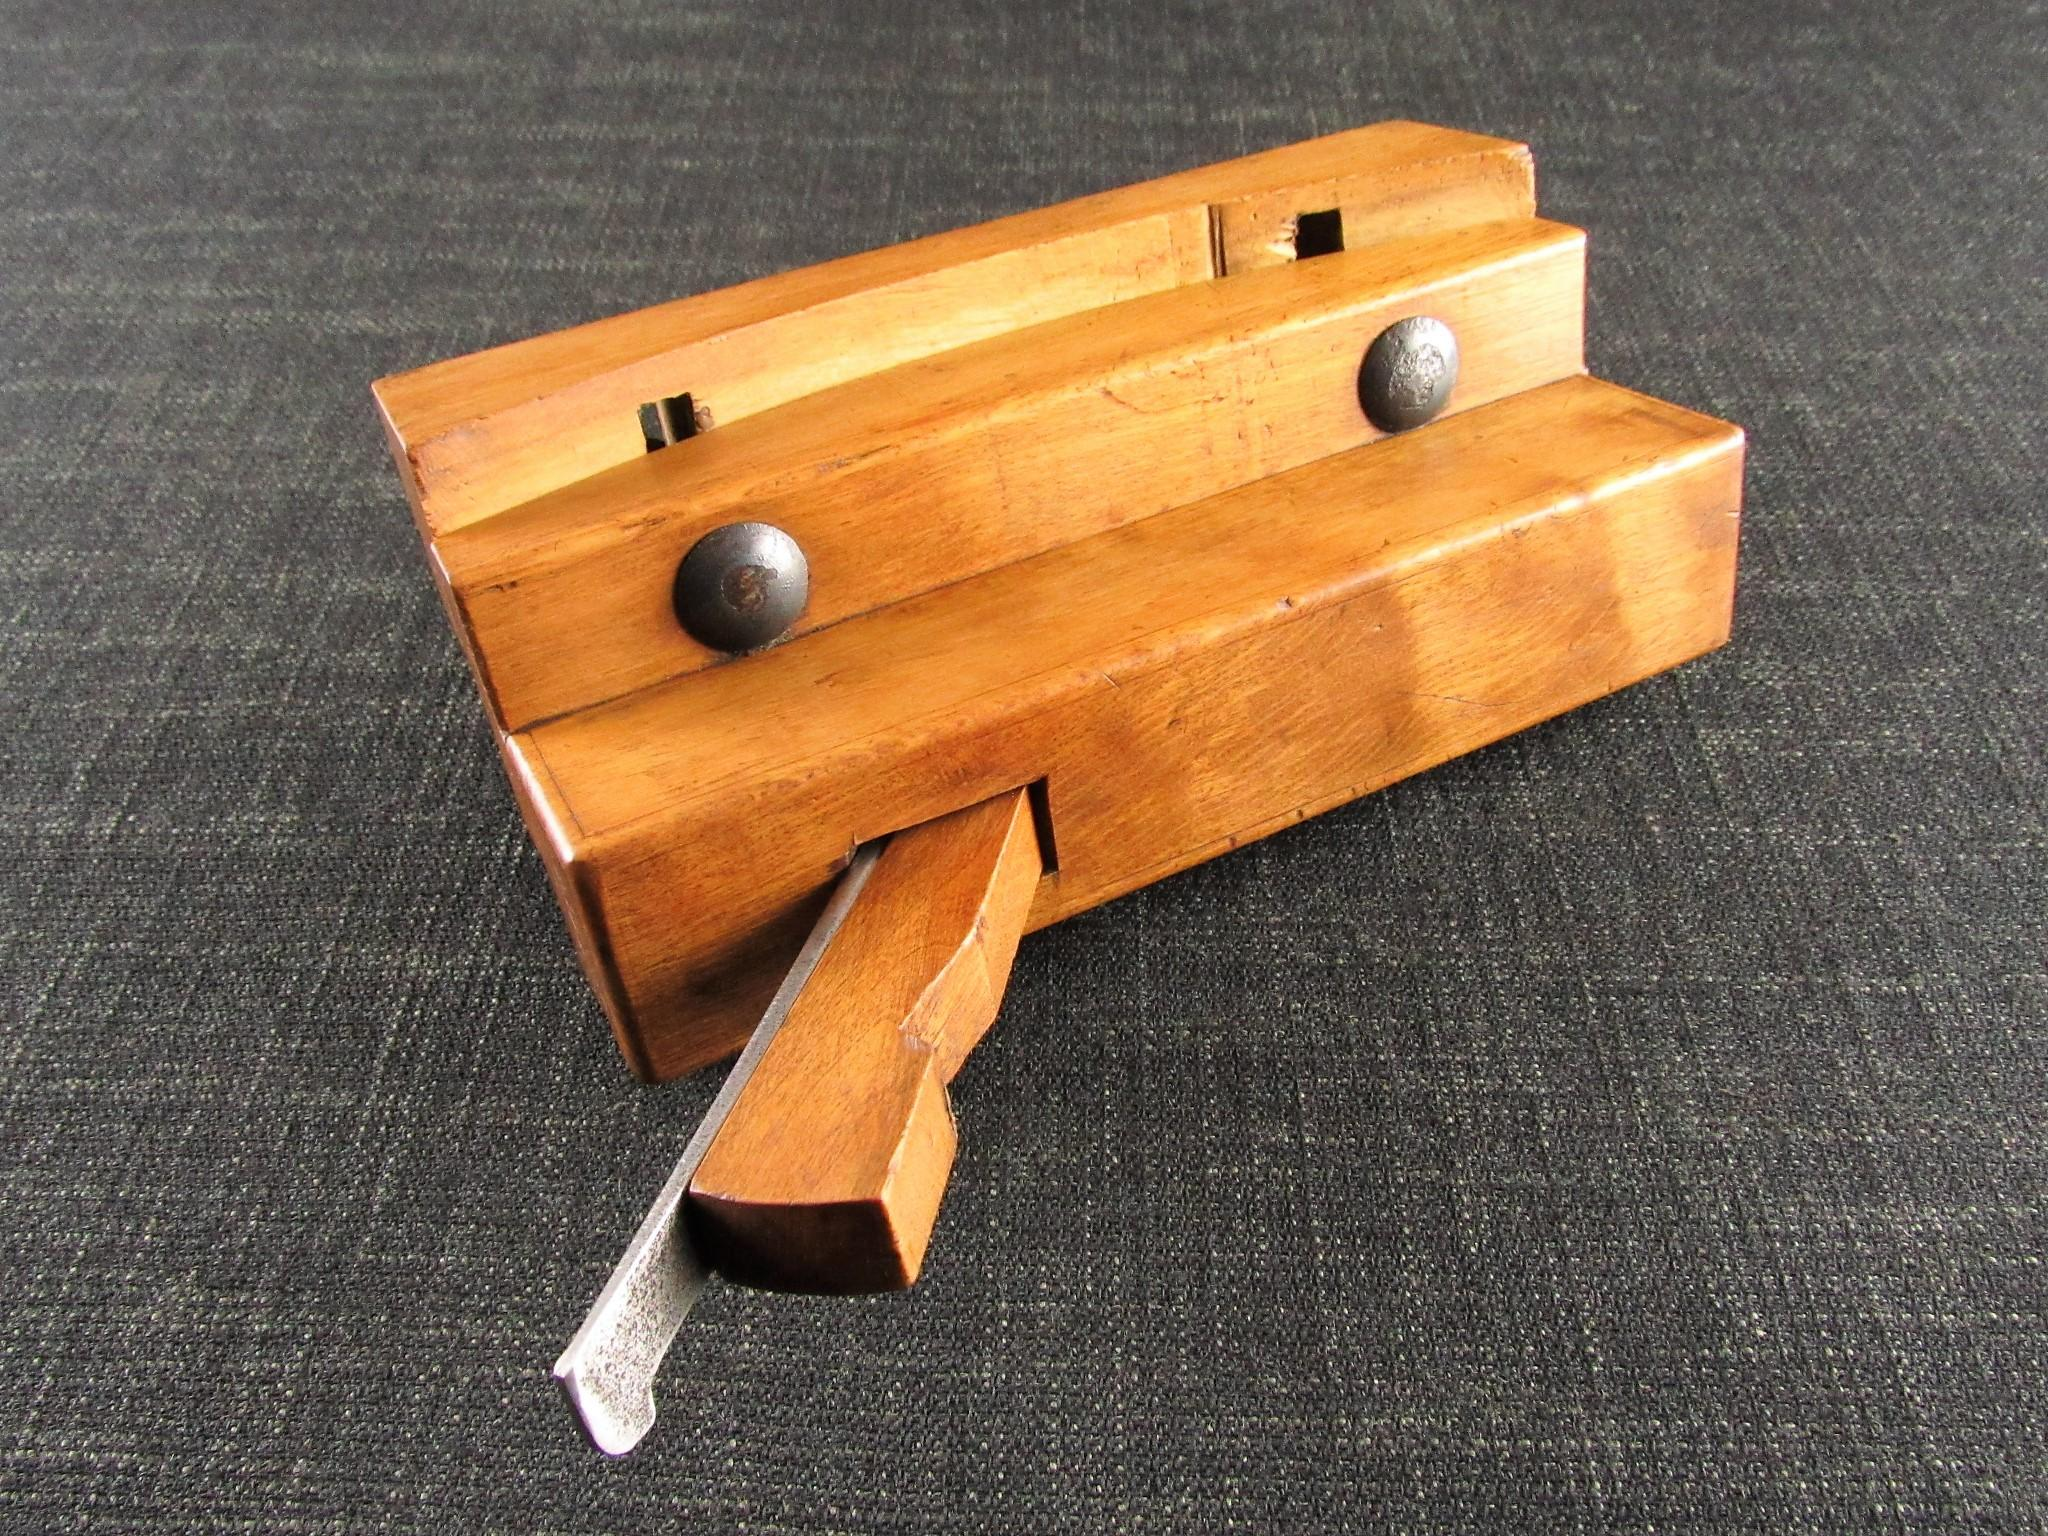 Unusual Wooden Compass Plough Plane by C JACOB of Strassburg